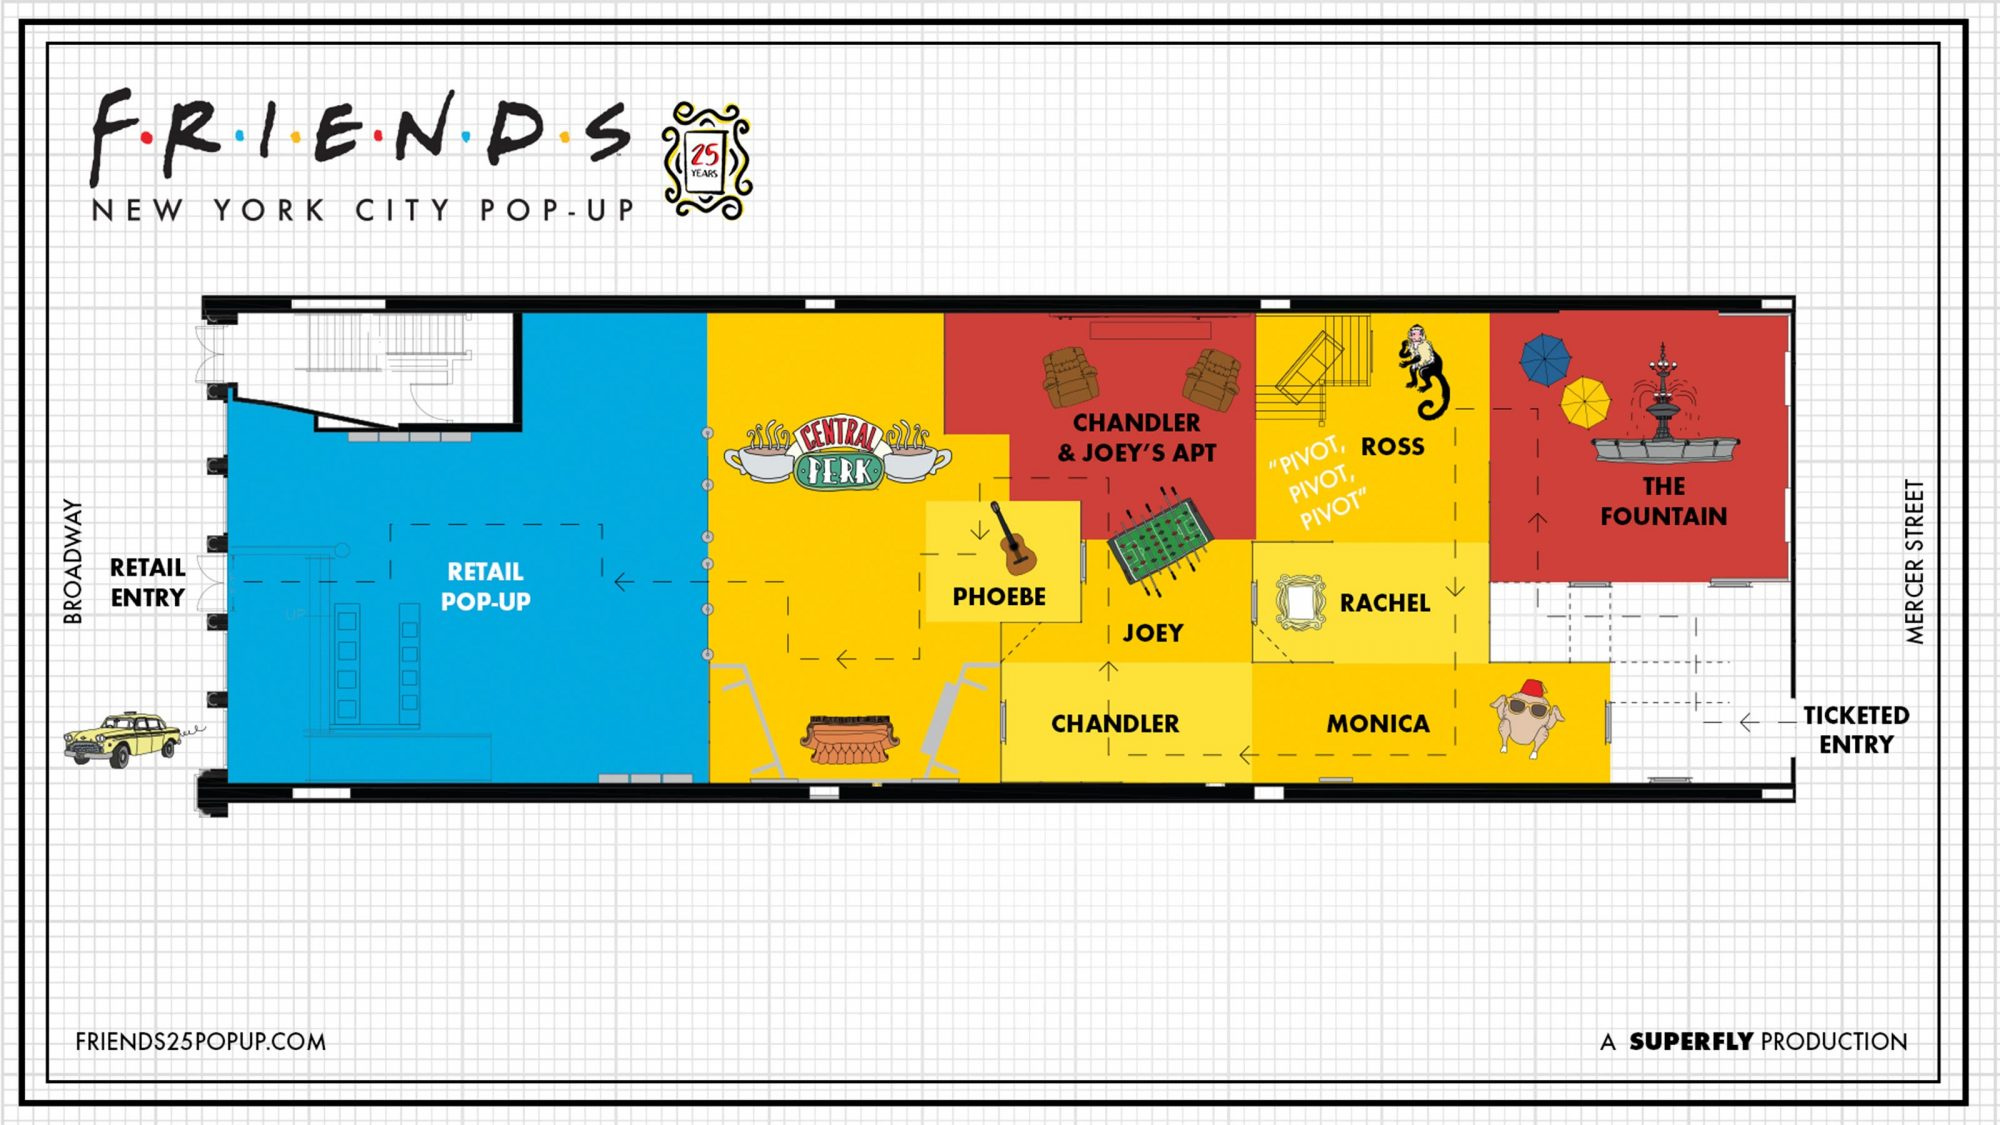 Friends' pop-up opening in New York to celebrate 25th anniversary